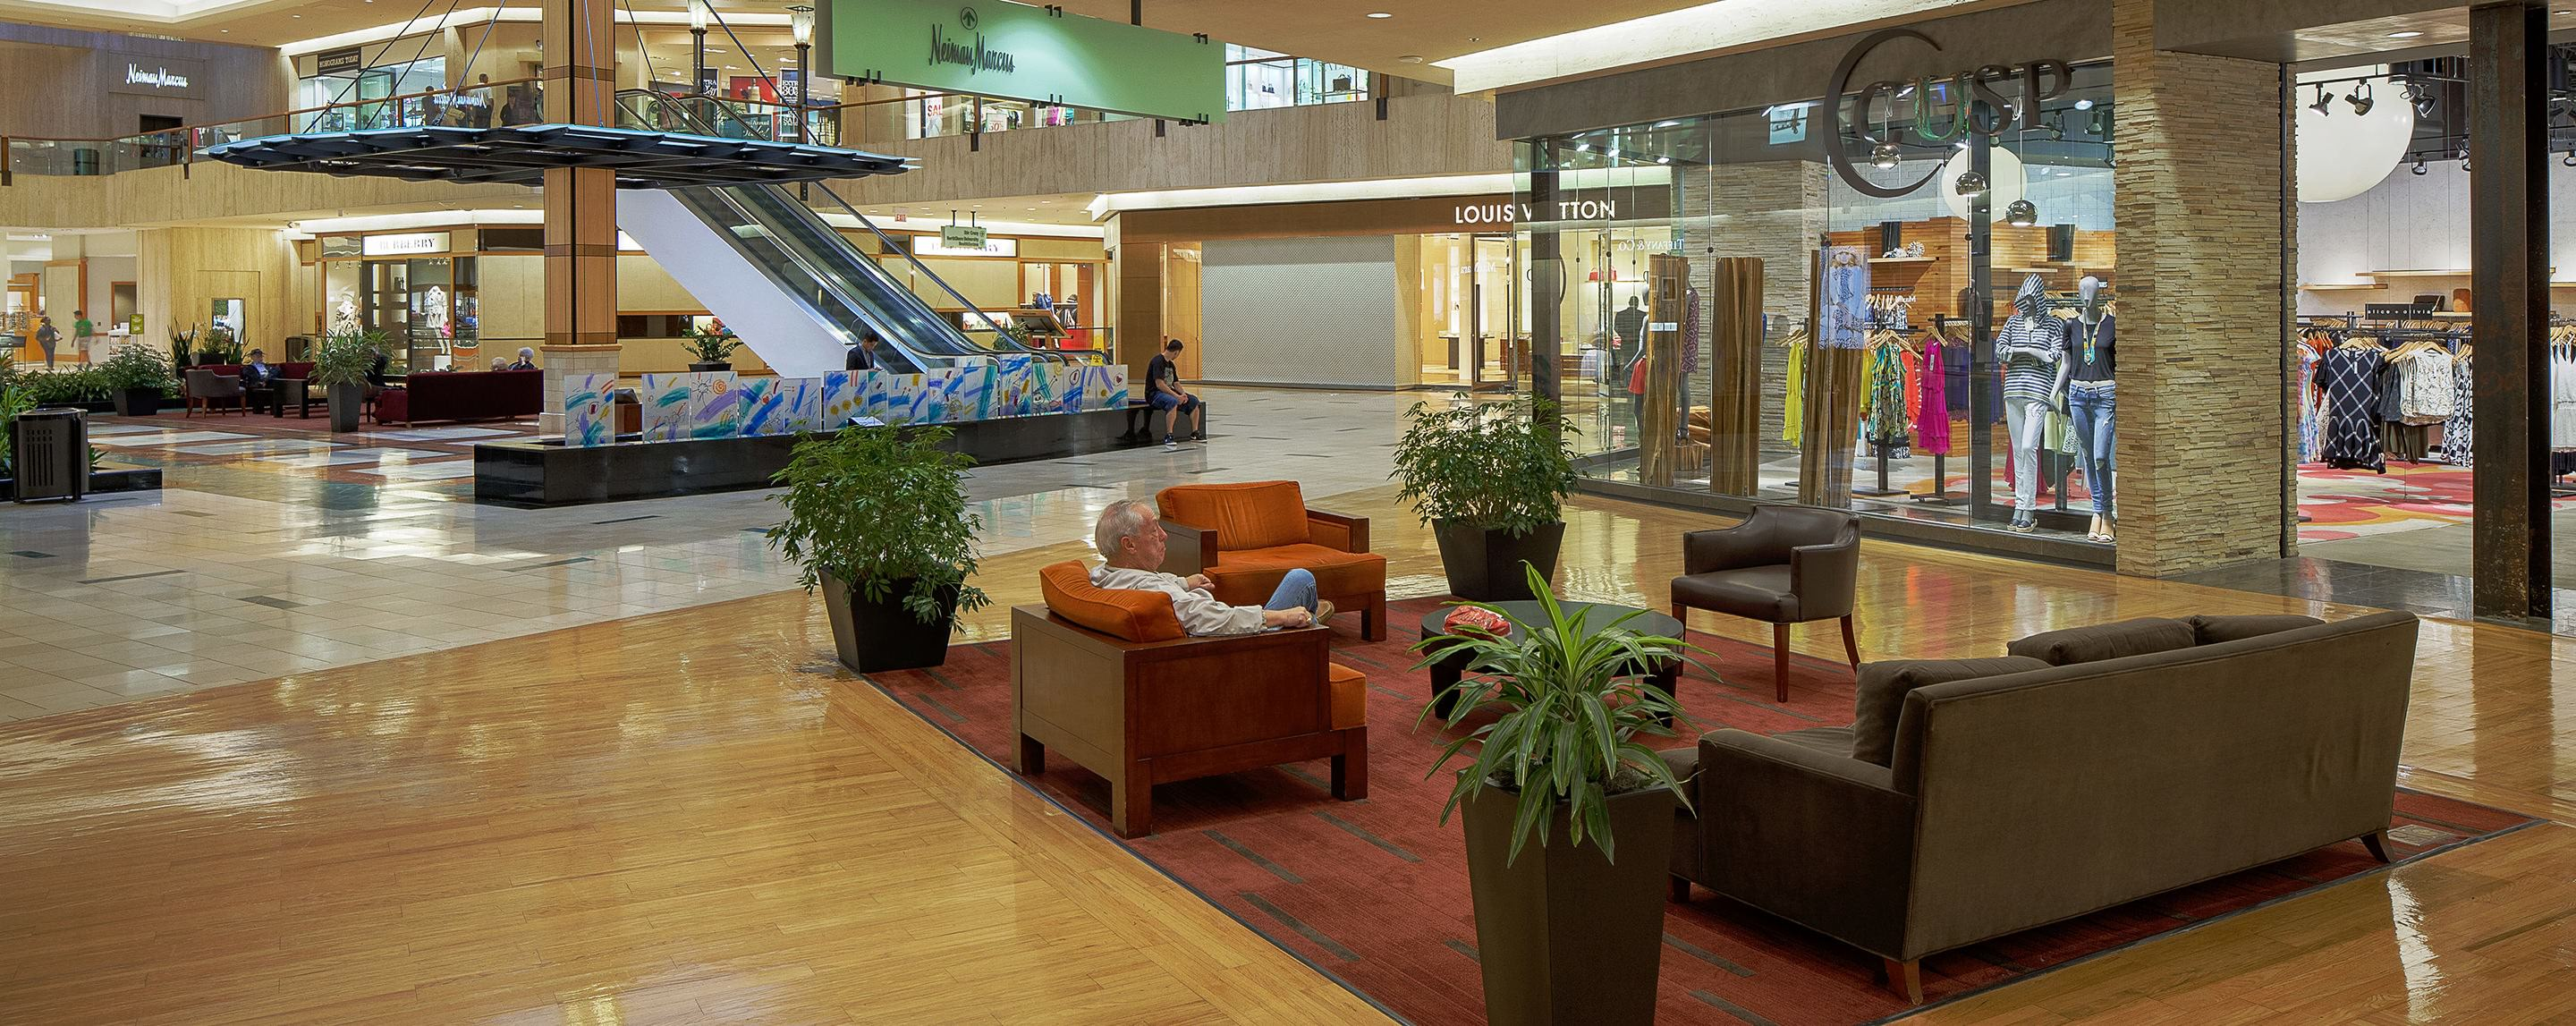 An interior common area at Northbrook Court has seating options for shoppers and views of upper level store fronts.